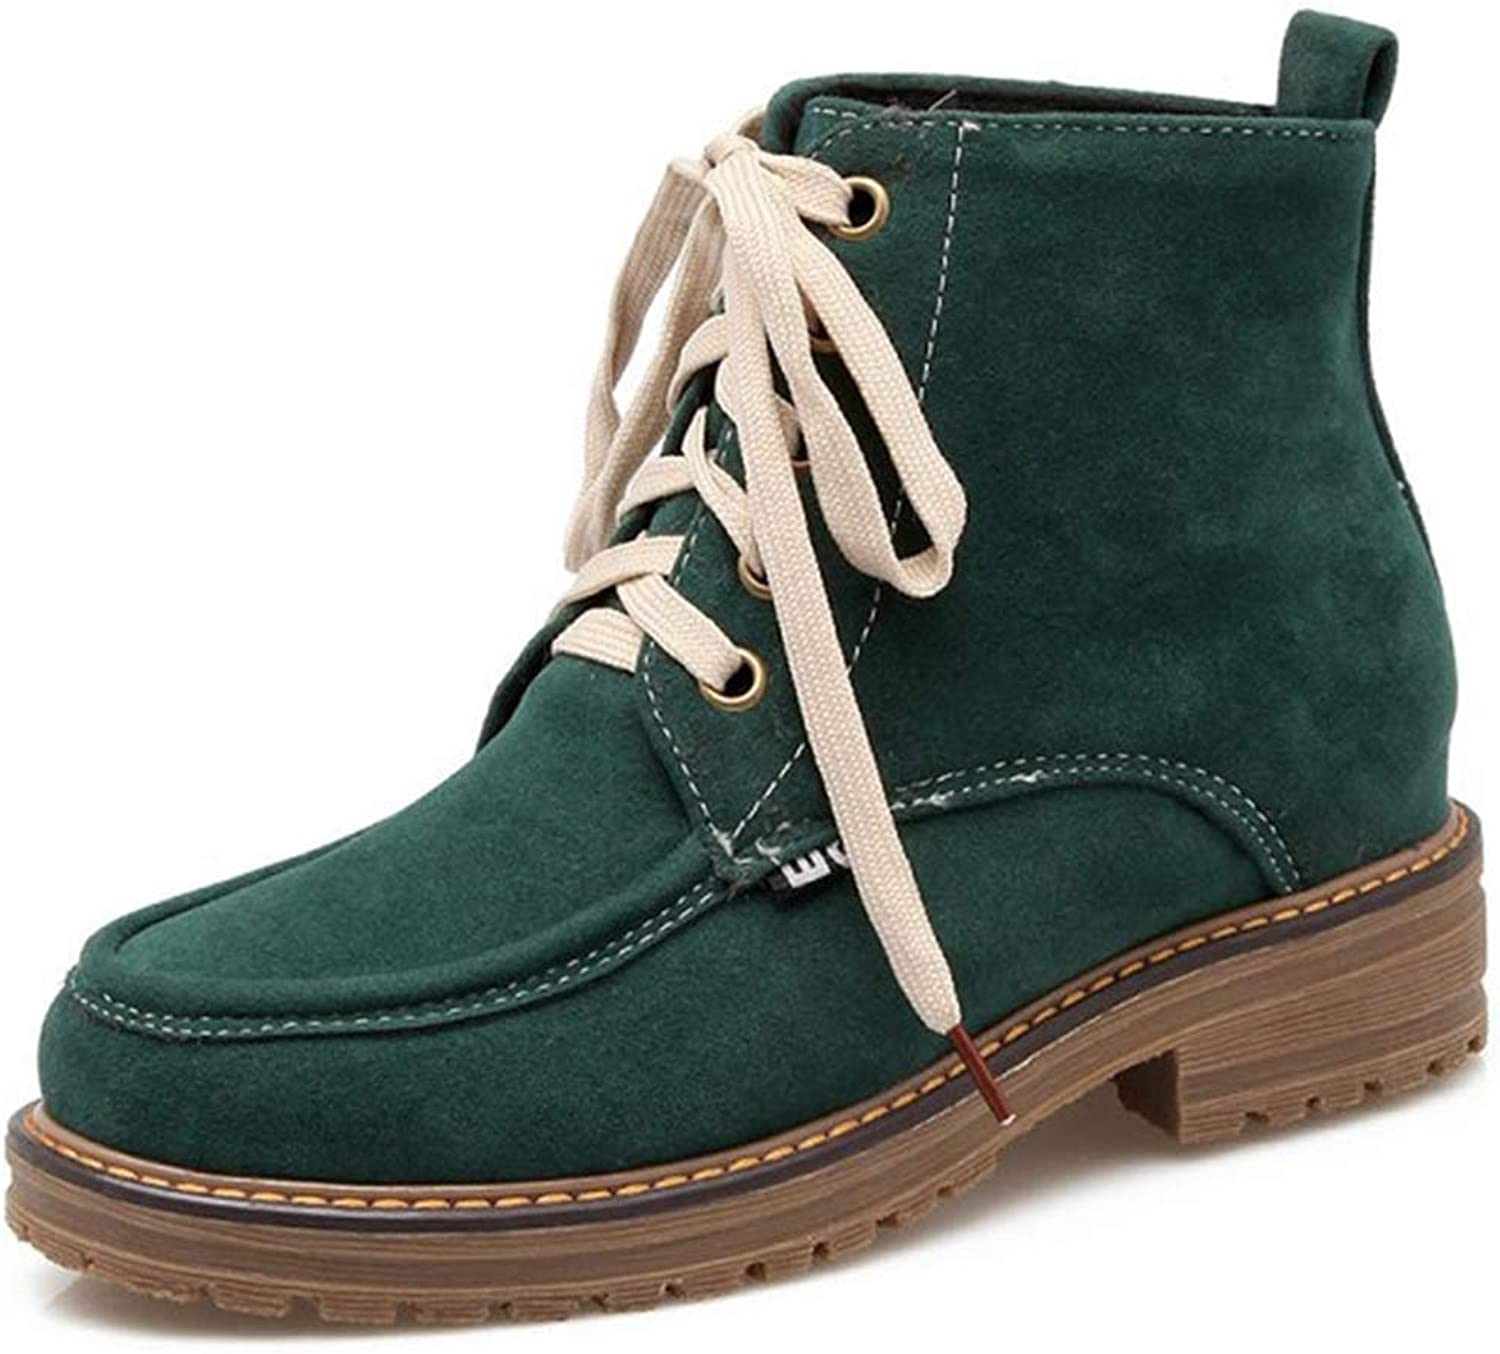 Fashion shoesbox Women's Lace Up Low Heel Work Combat Boots Round Toe Waterproof Short Ankle Bootie Hiking Boots